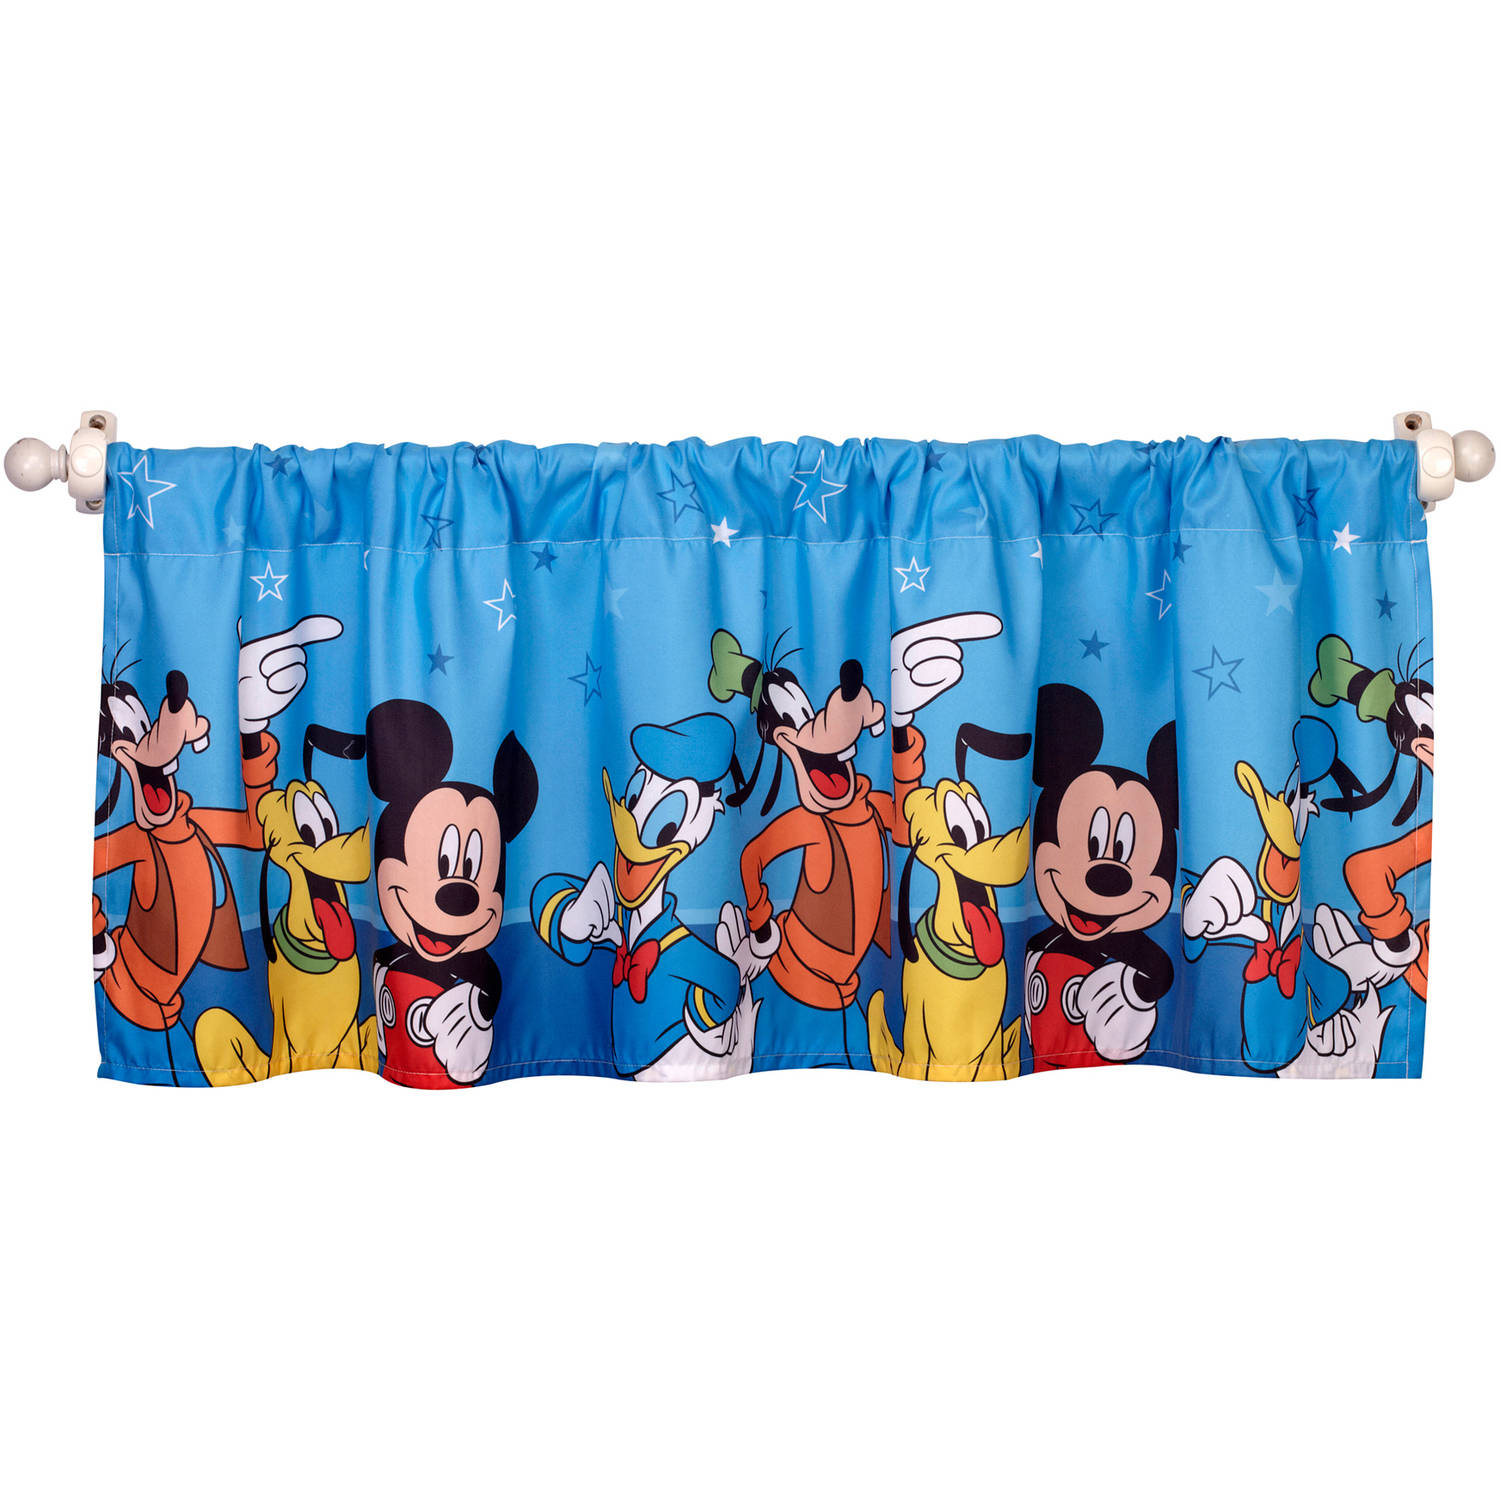 Disney Mickey Mouse Window Valance   Walmart.com